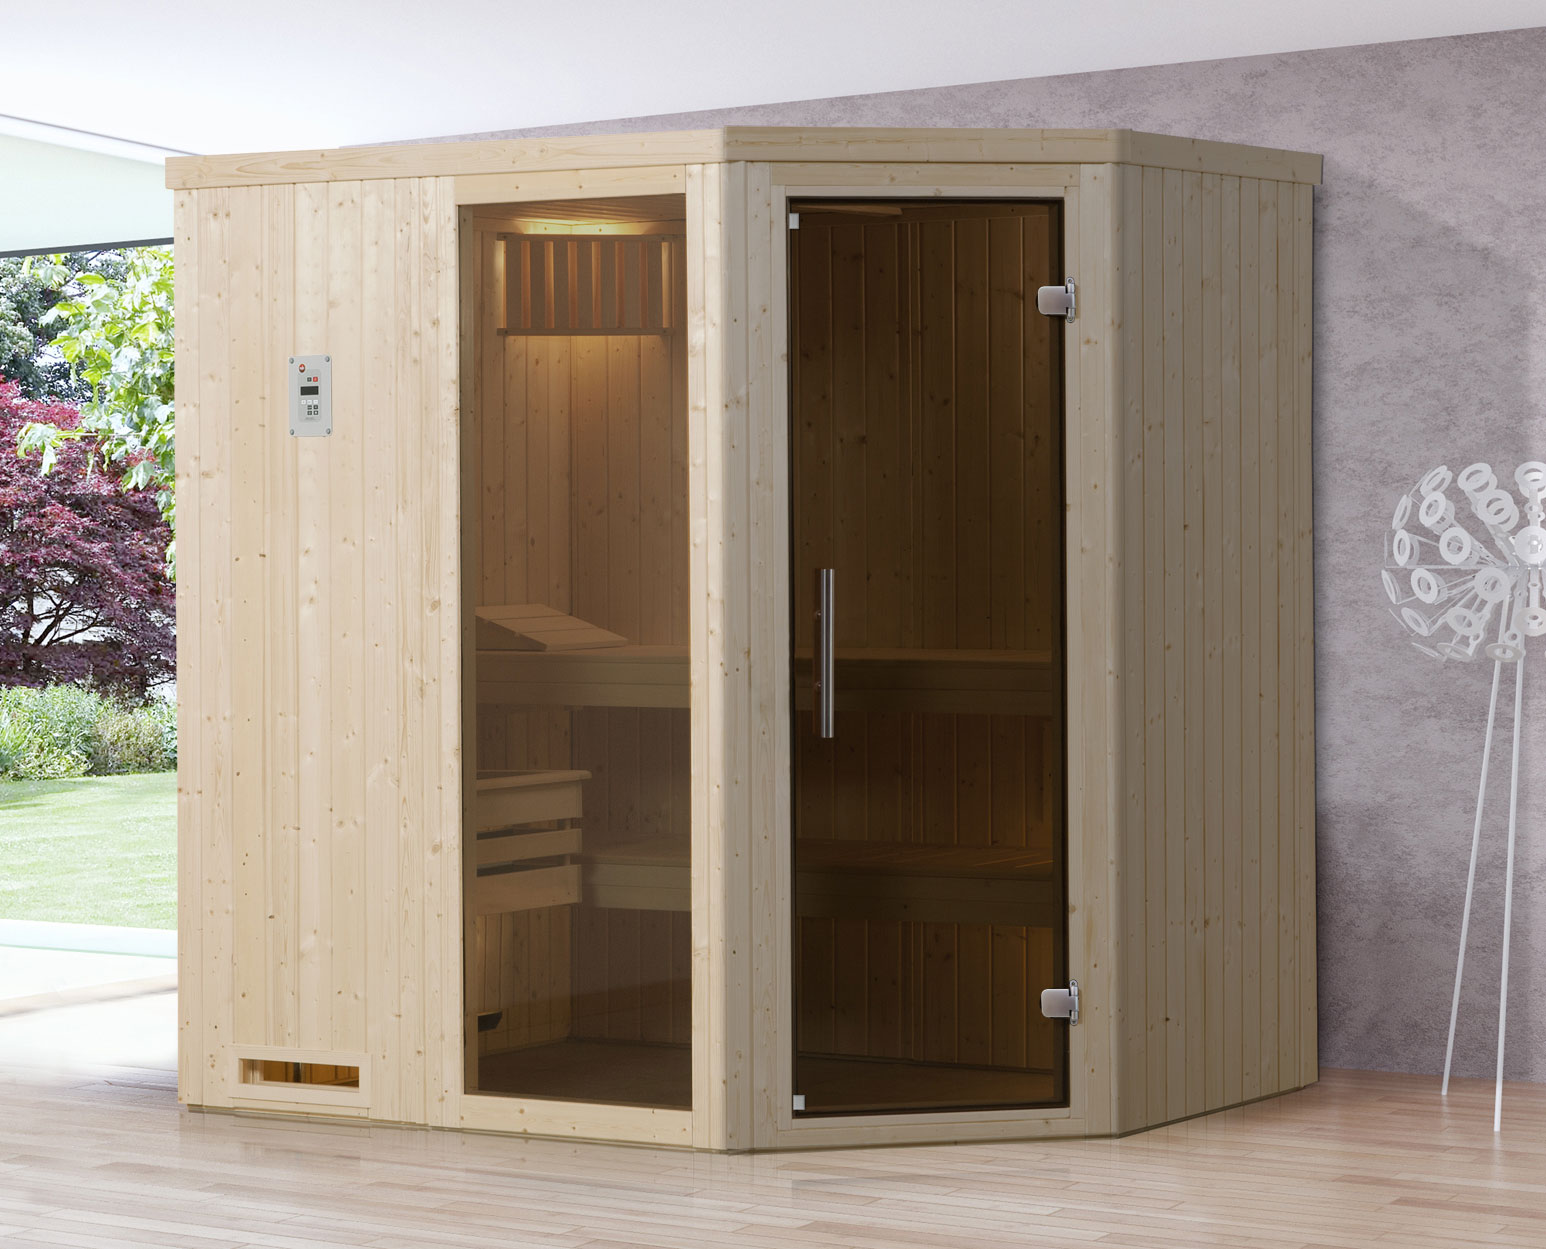 weka sauna 508 gtf gr 2 68mm ohne ofen mit glast r und fenster bild 1. Black Bedroom Furniture Sets. Home Design Ideas